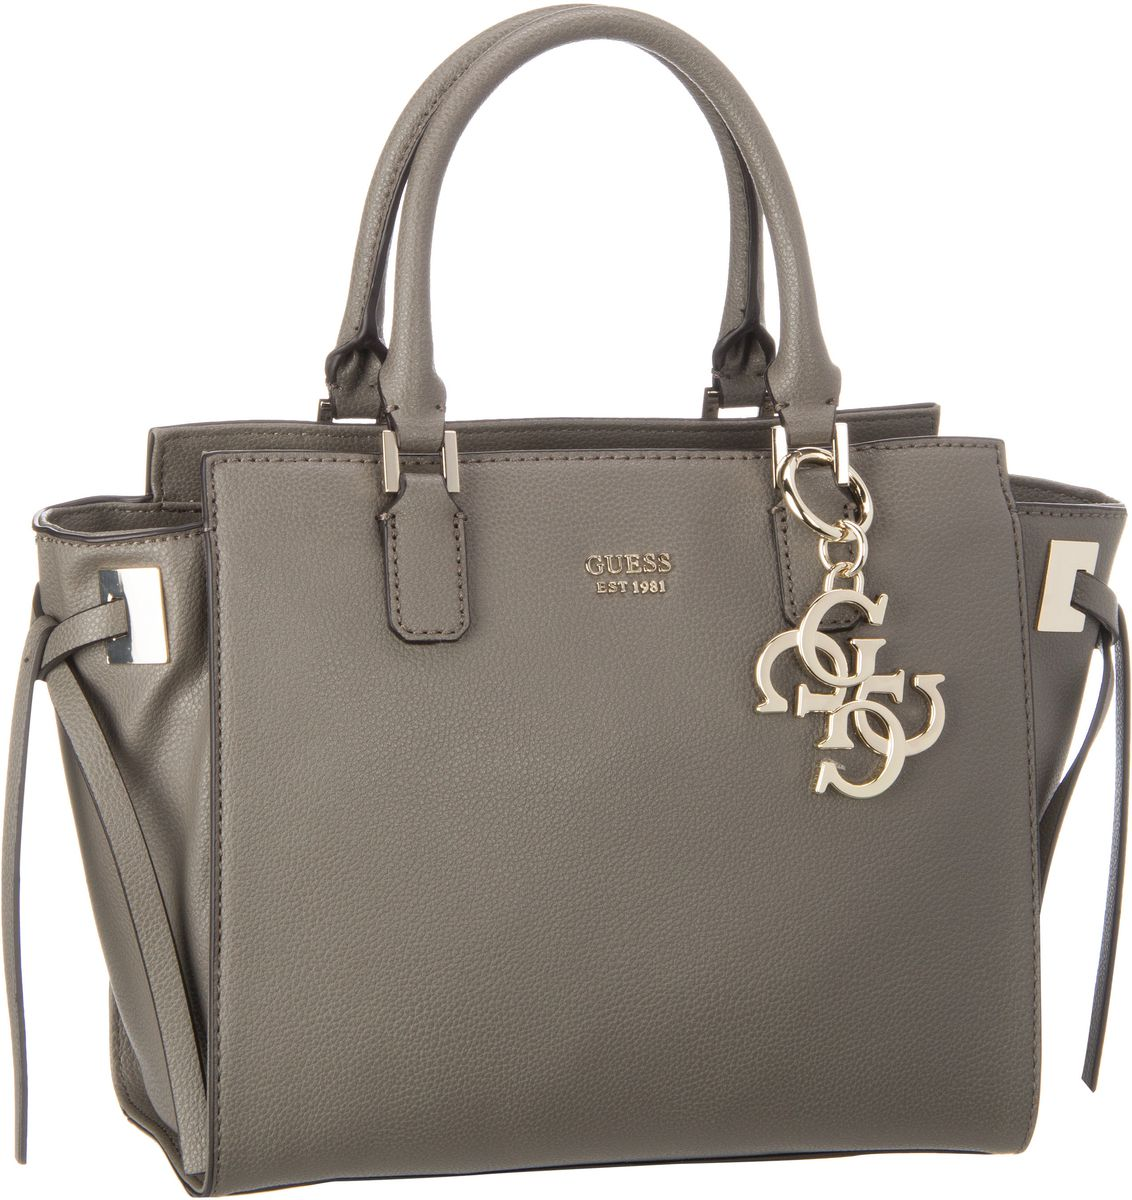 Guess Digital Status Satchel Fog - Handtasche